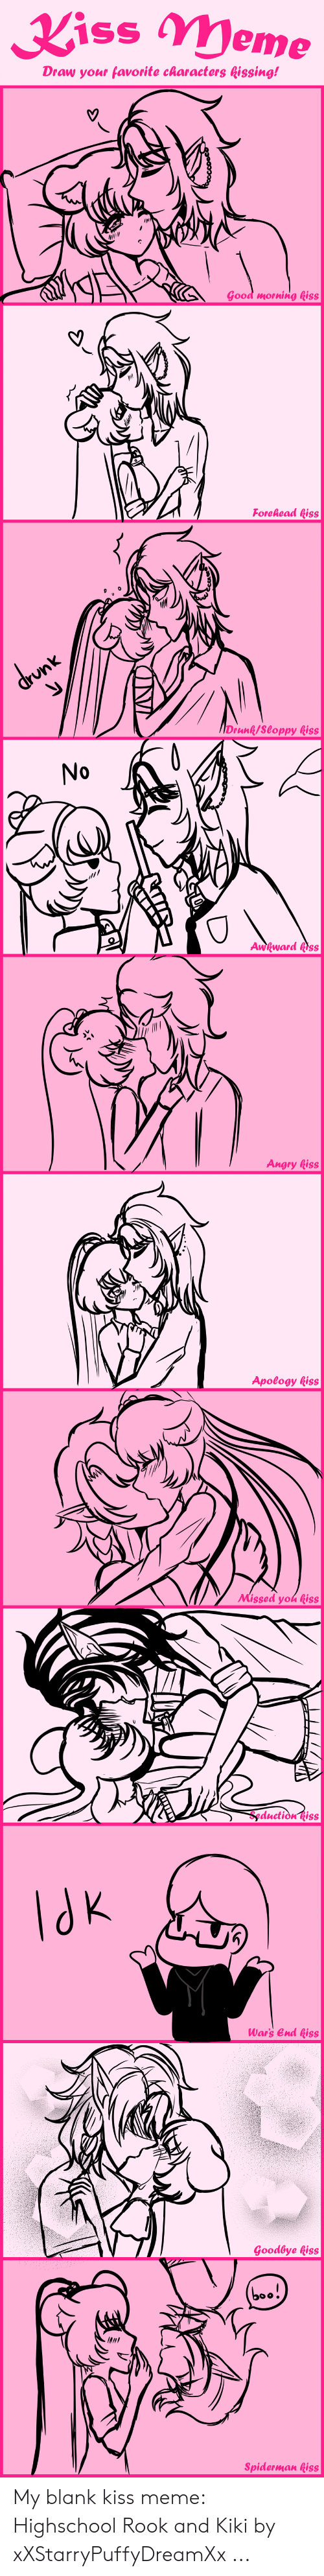 Kiss Meme Draw Your Favorite Characters Kissing! Good